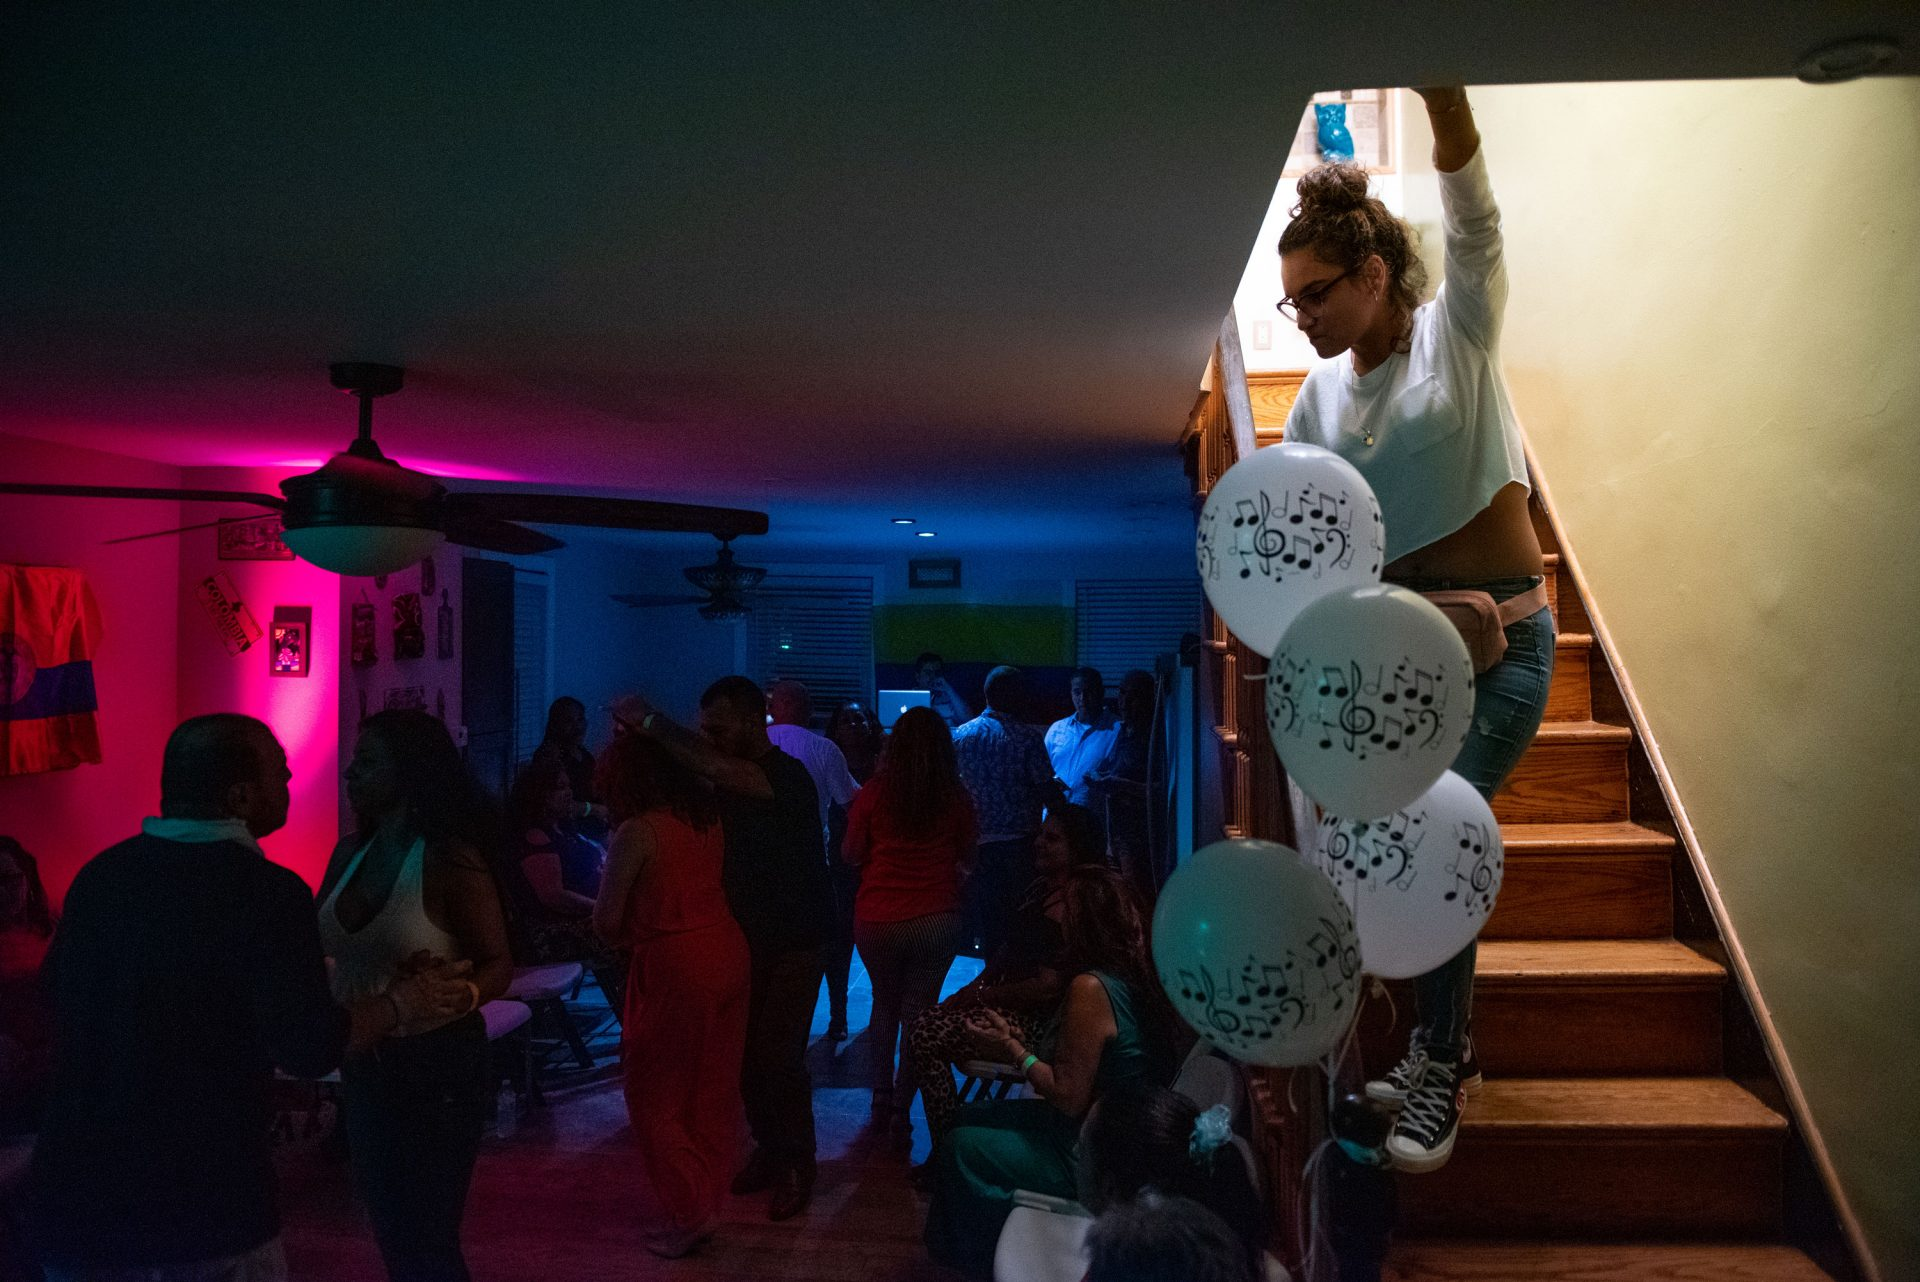 Sandra Colon laughs while dancing in the living room of her Oxford Circle home on Sunday, September 15, 2019. Colon regularly turns her home into a viejoteca (a dance party for older adults) after one restaurant in Philadelphia that hosted them closed down.